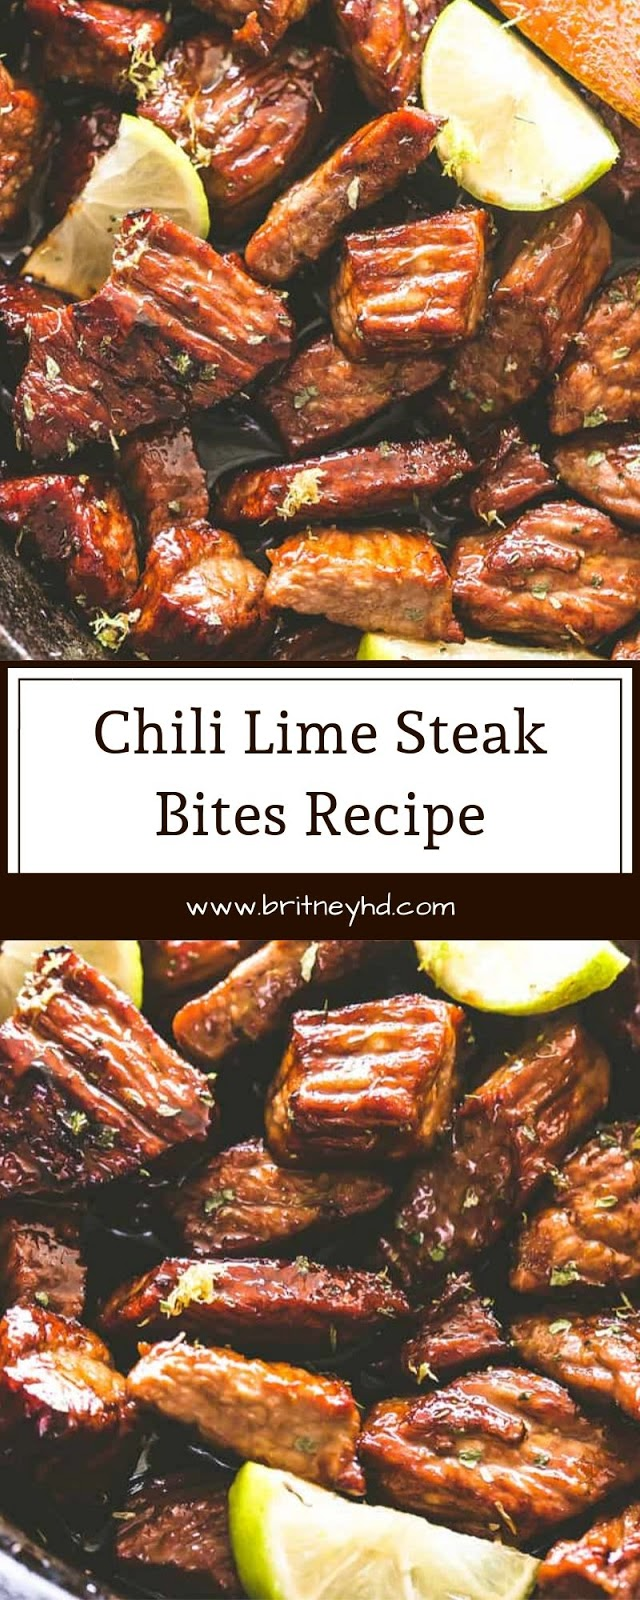 Chili Lime Steak Bites Recipe